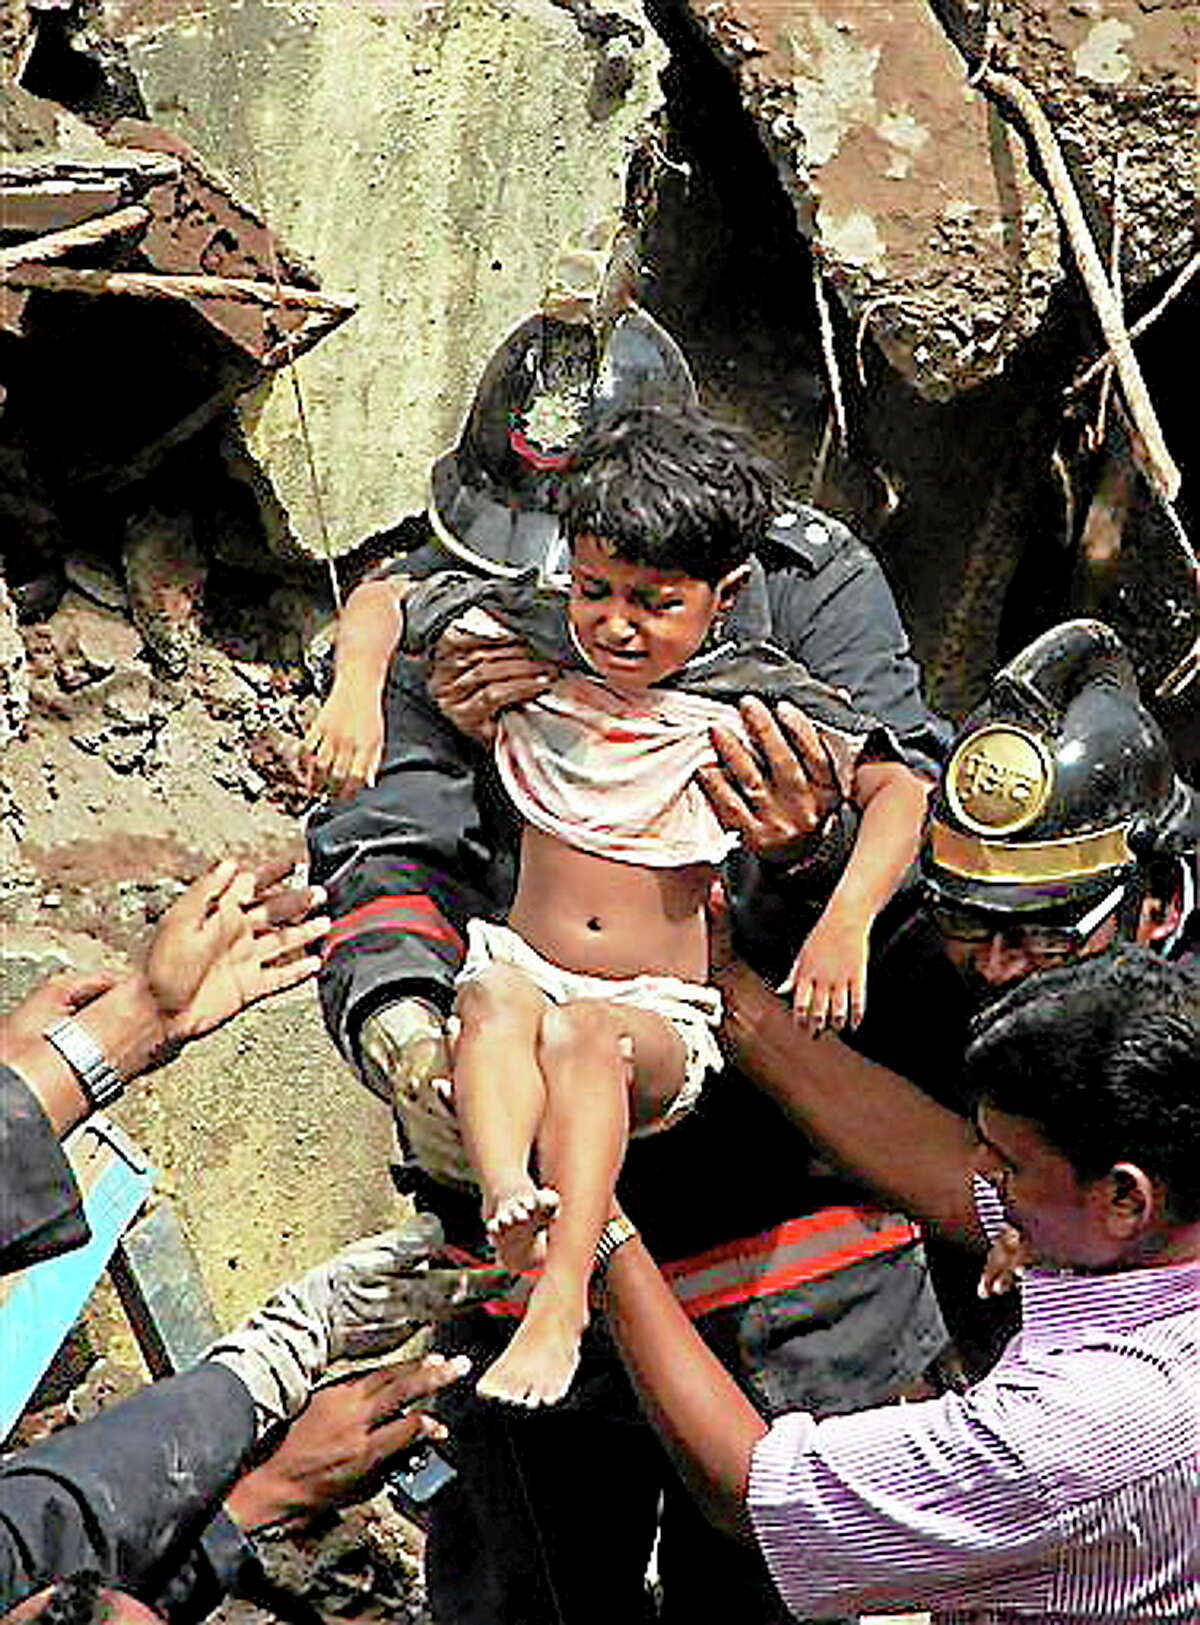 Indian Fire officials rescue a girl from the debris of a collapsed building in Mumbai, India, Friday, Sept. 27, 2013. The multi-story residential building collapsed in India's financial capital of Mumbai early Friday, killing at least three people and sending rescuers racing to reach dozens of people feared trapped in the rubble. (AP Photo)